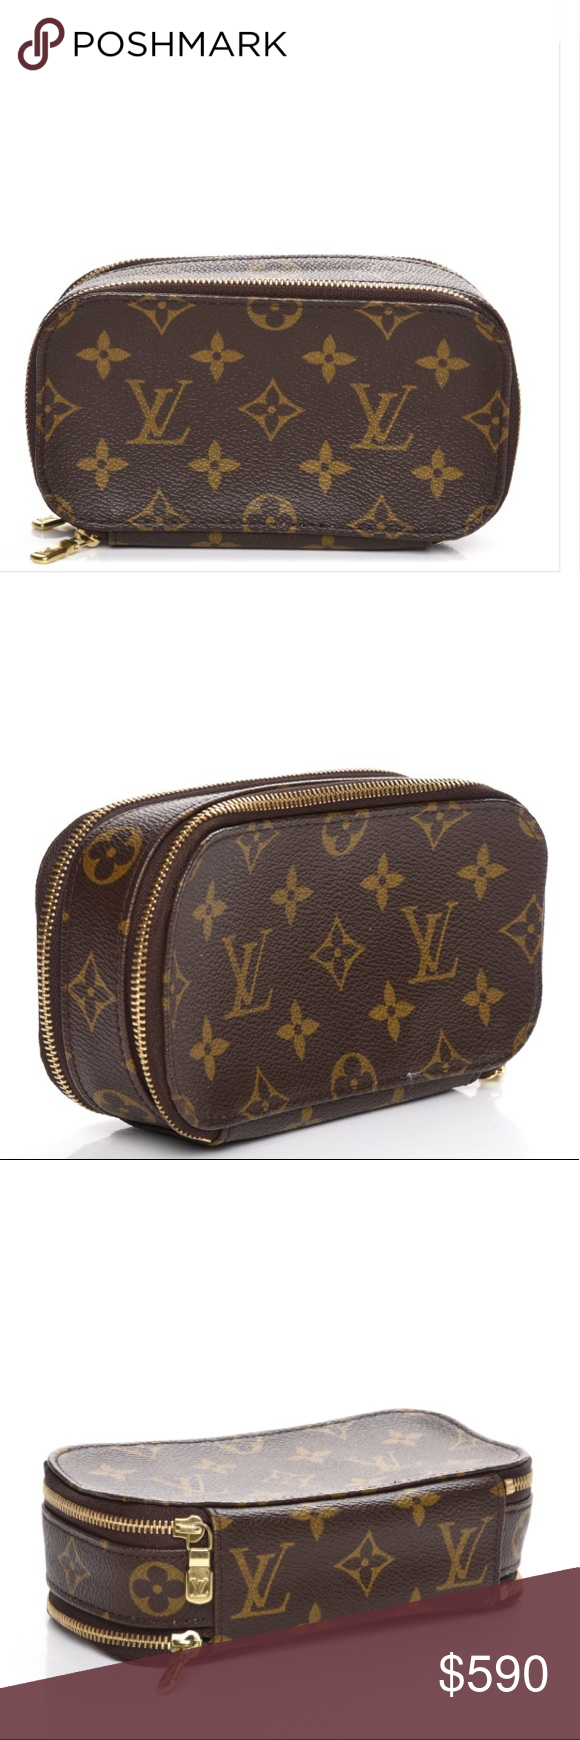 Brown Gucci cosmetic travel bag Cute brown Gucci parfums